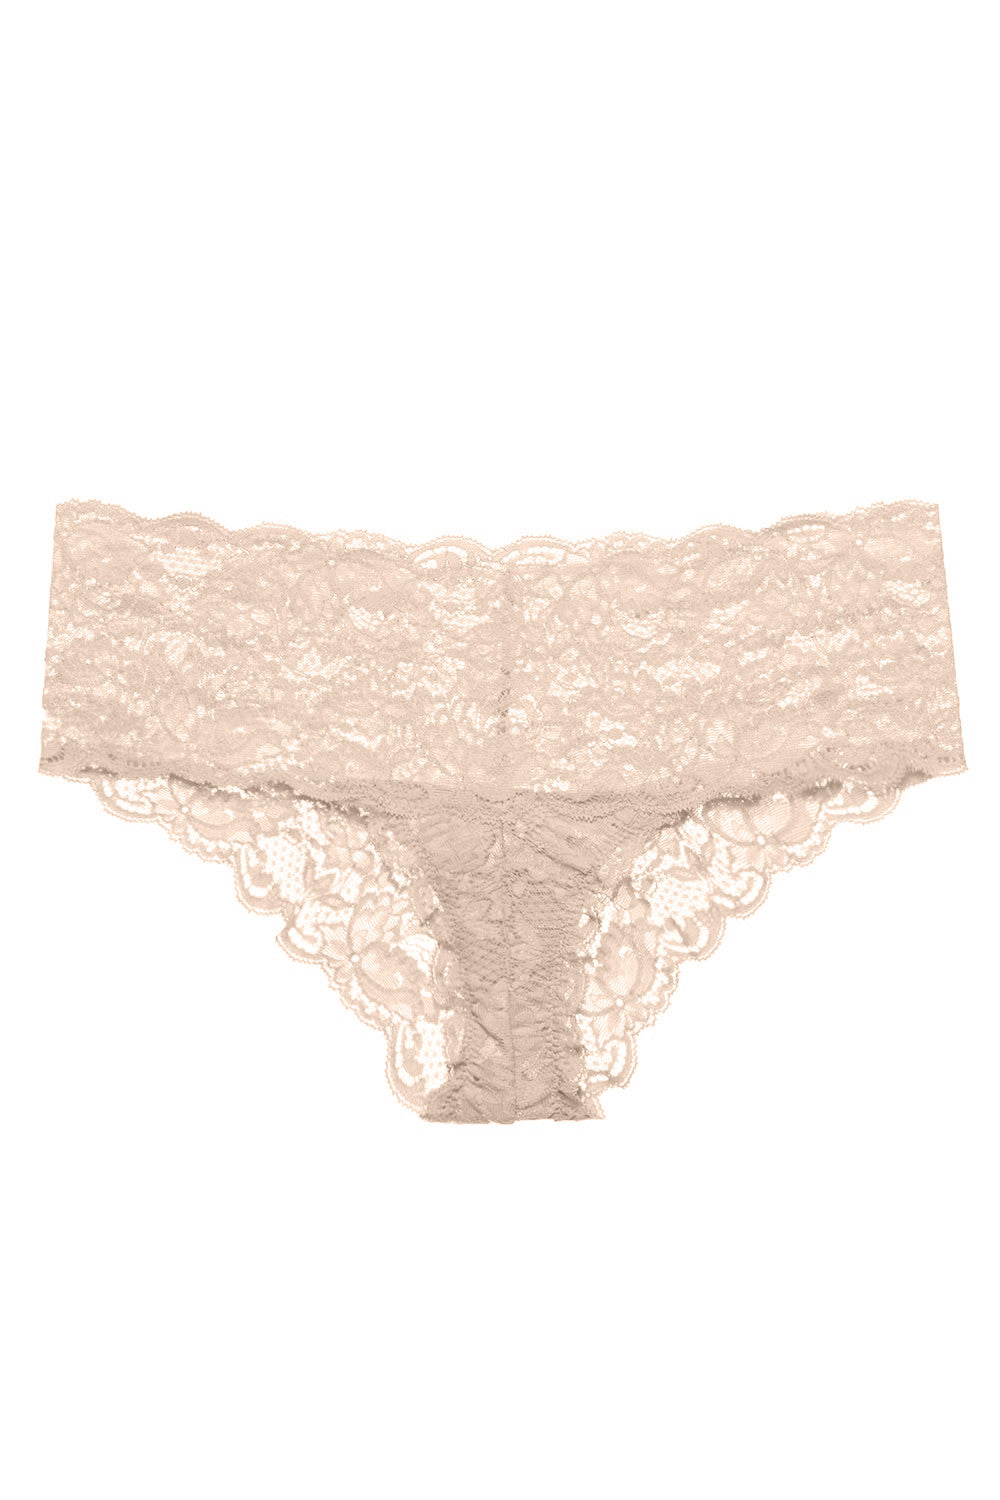 Black Never Say Never Hottie Lace Hotpant